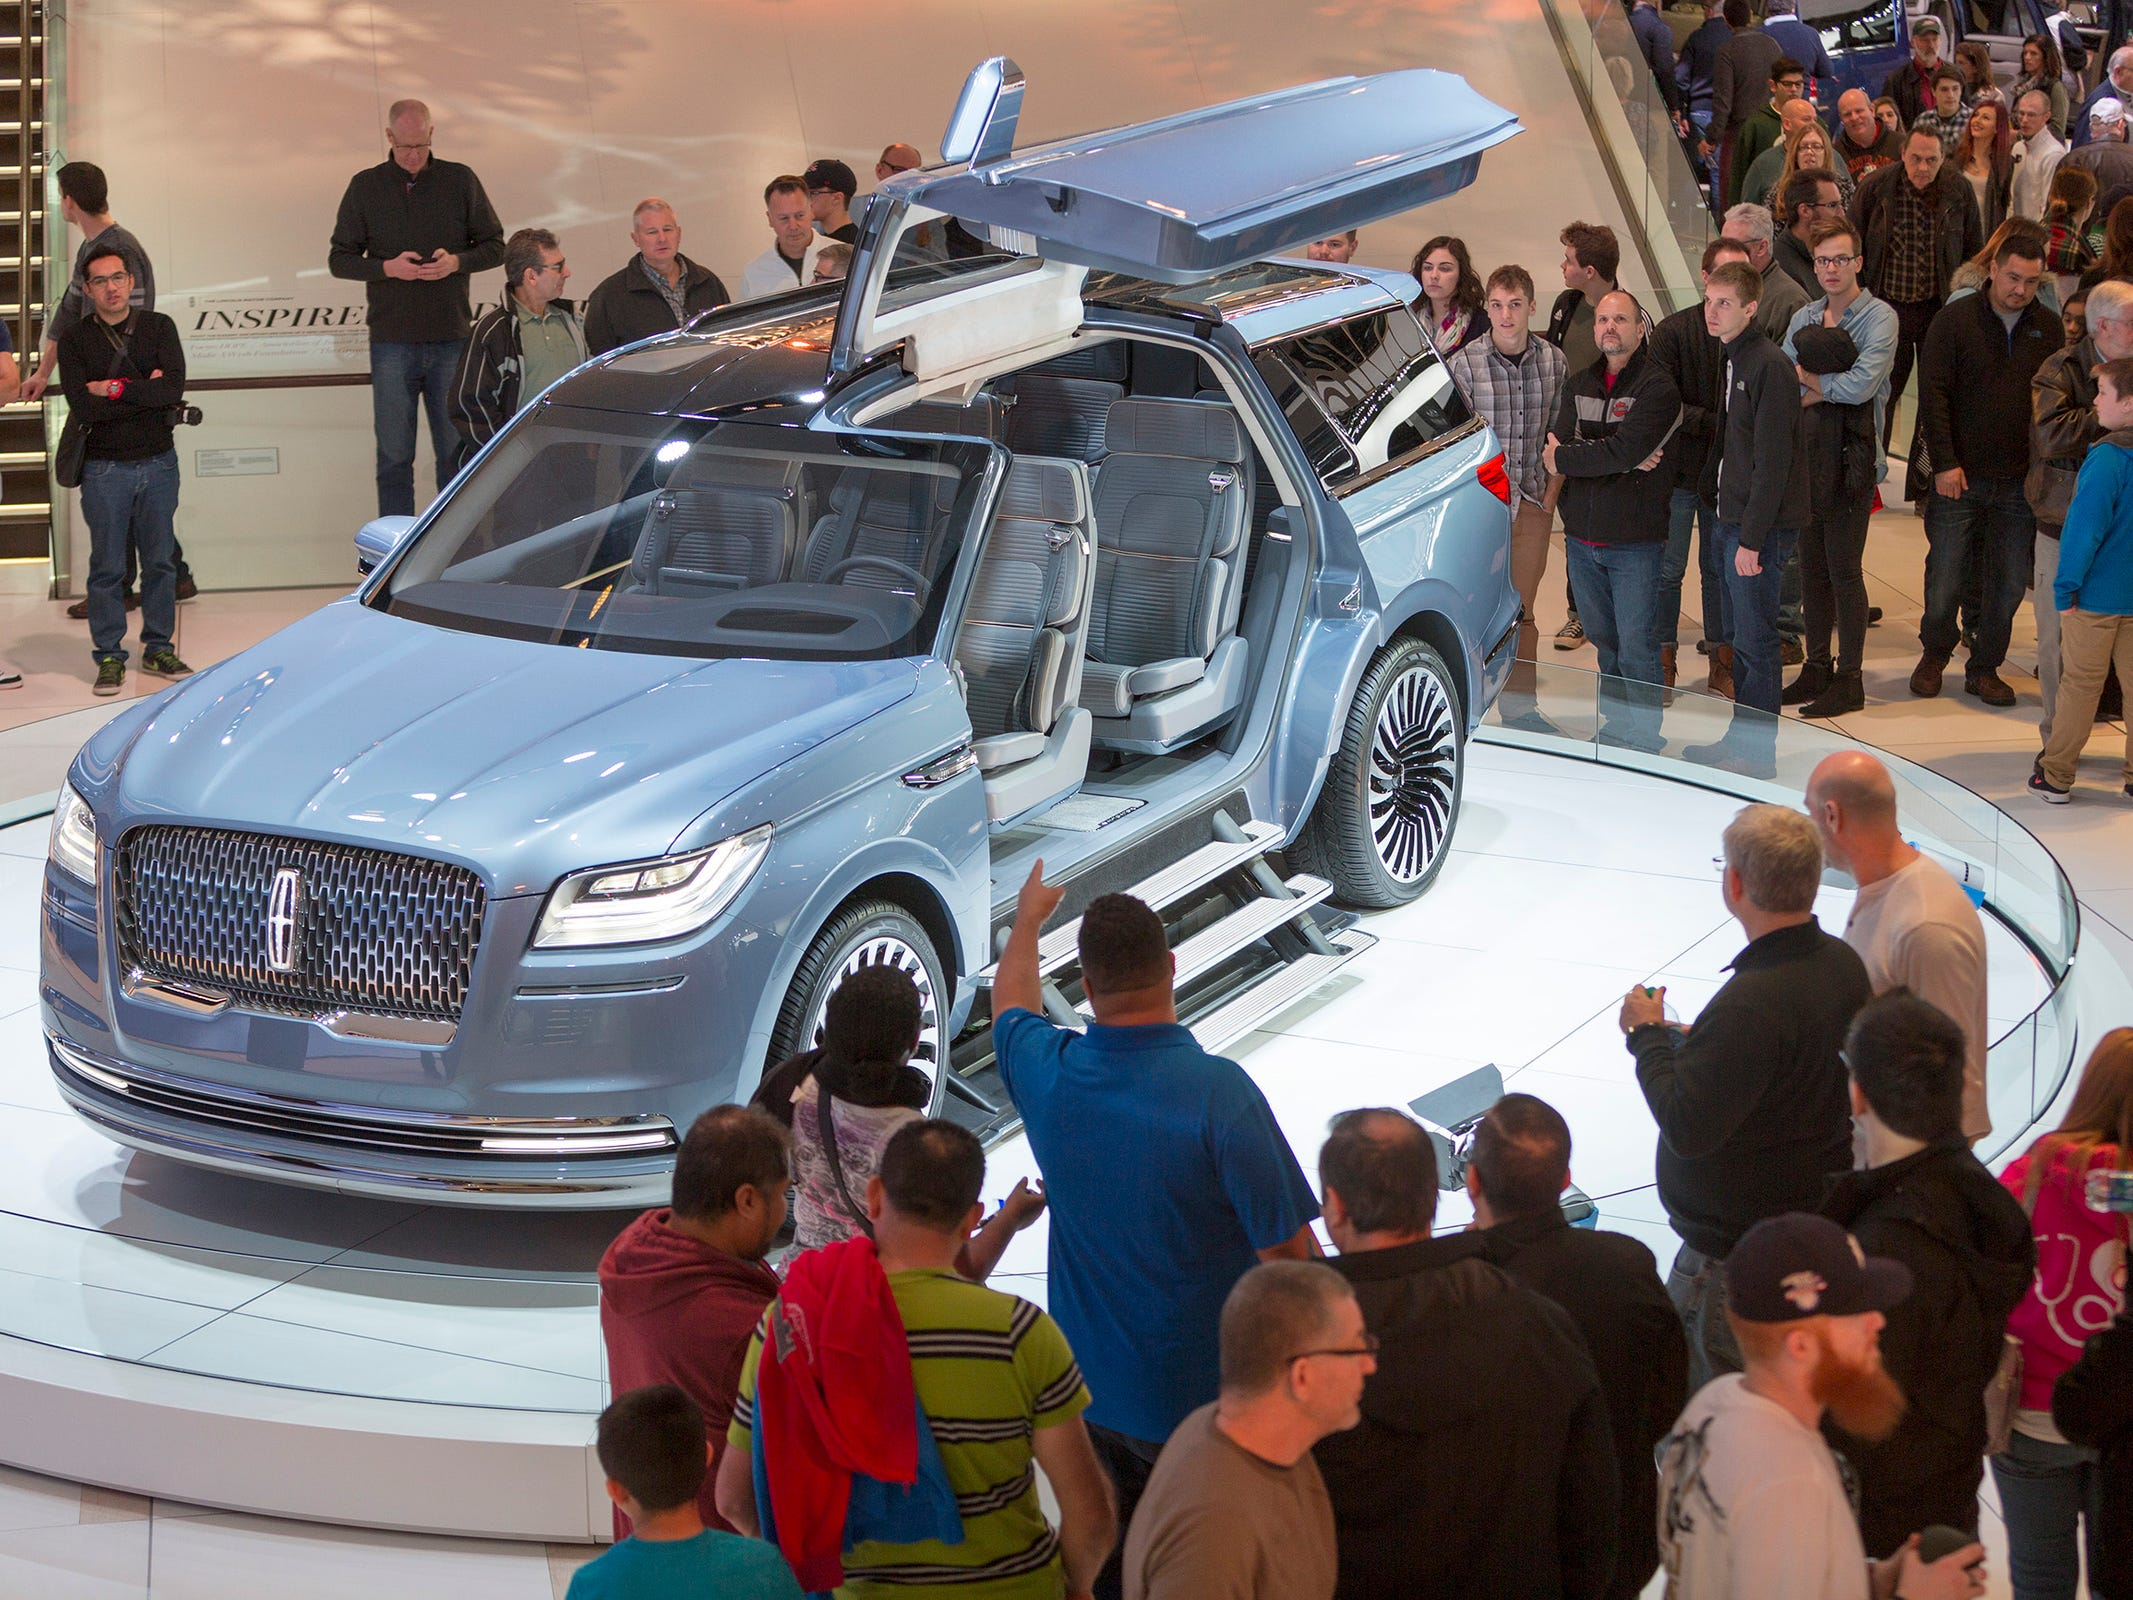 Attendees gather around the Lincoln Navigator Concept during the 2017 North American International Auto Show public day at Cobo Center in Detroit on Saturday, January 14, 2017.